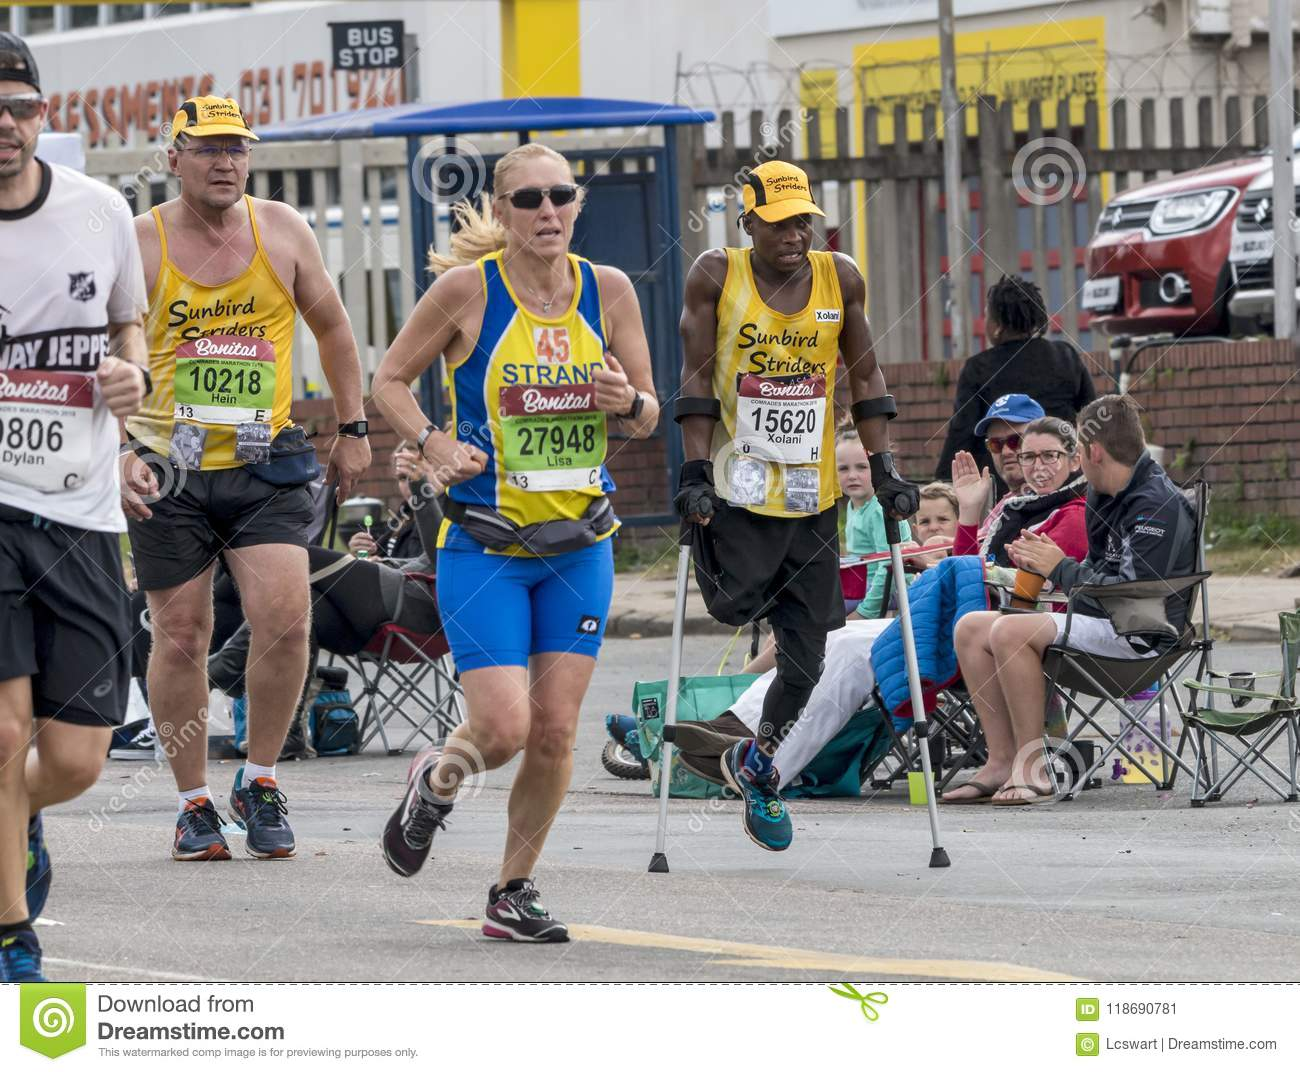 https://thumbs.dreamstime.com/z/xolani-luvuno-using-crutches-competing-comrades-ultra-maratho-pinetown-durban-south-africa-june-midday-unknown-spectators-118690781.jpg